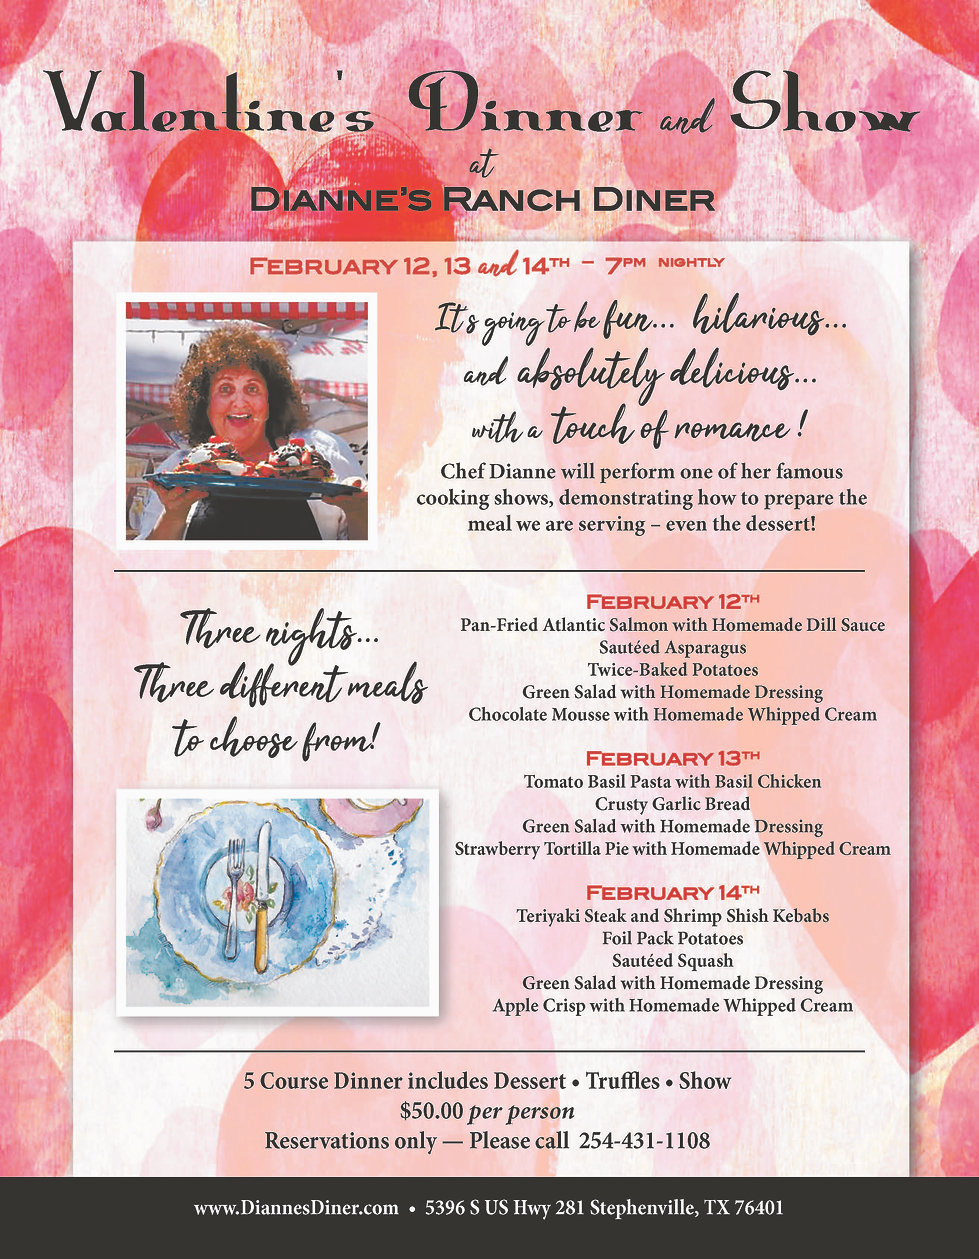 Valentine's Dinner and Show